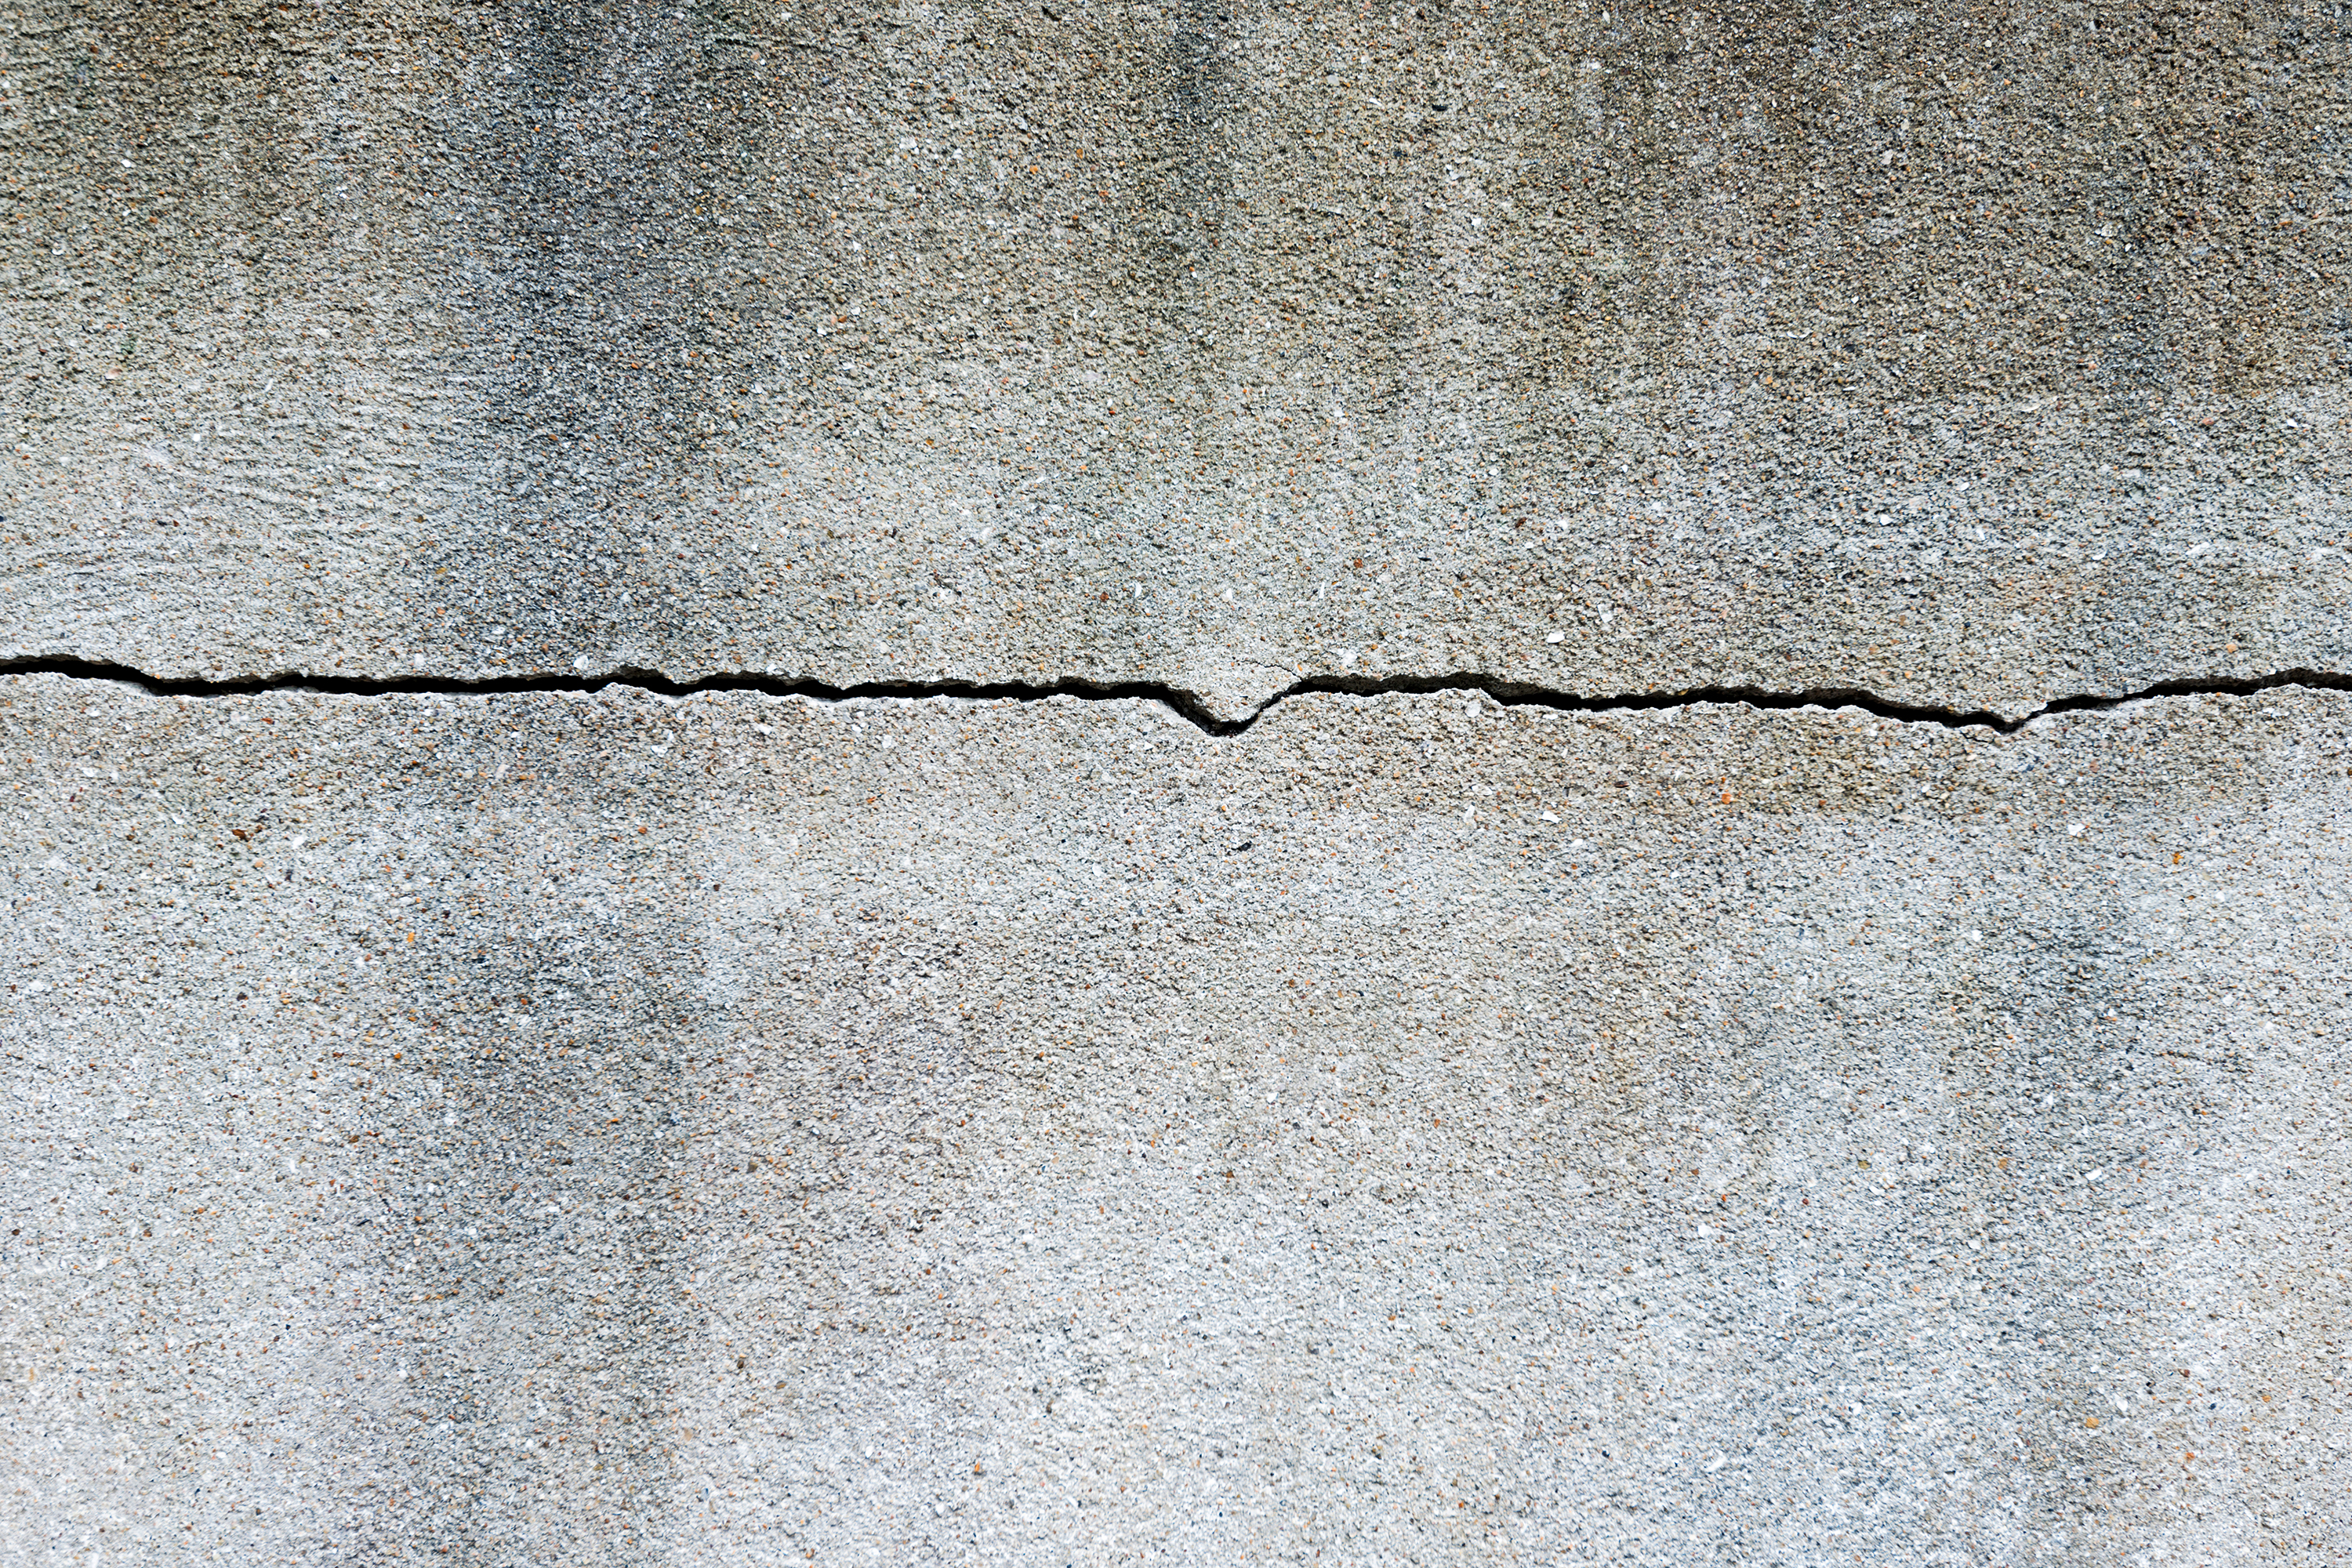 Crack in concrete wall.